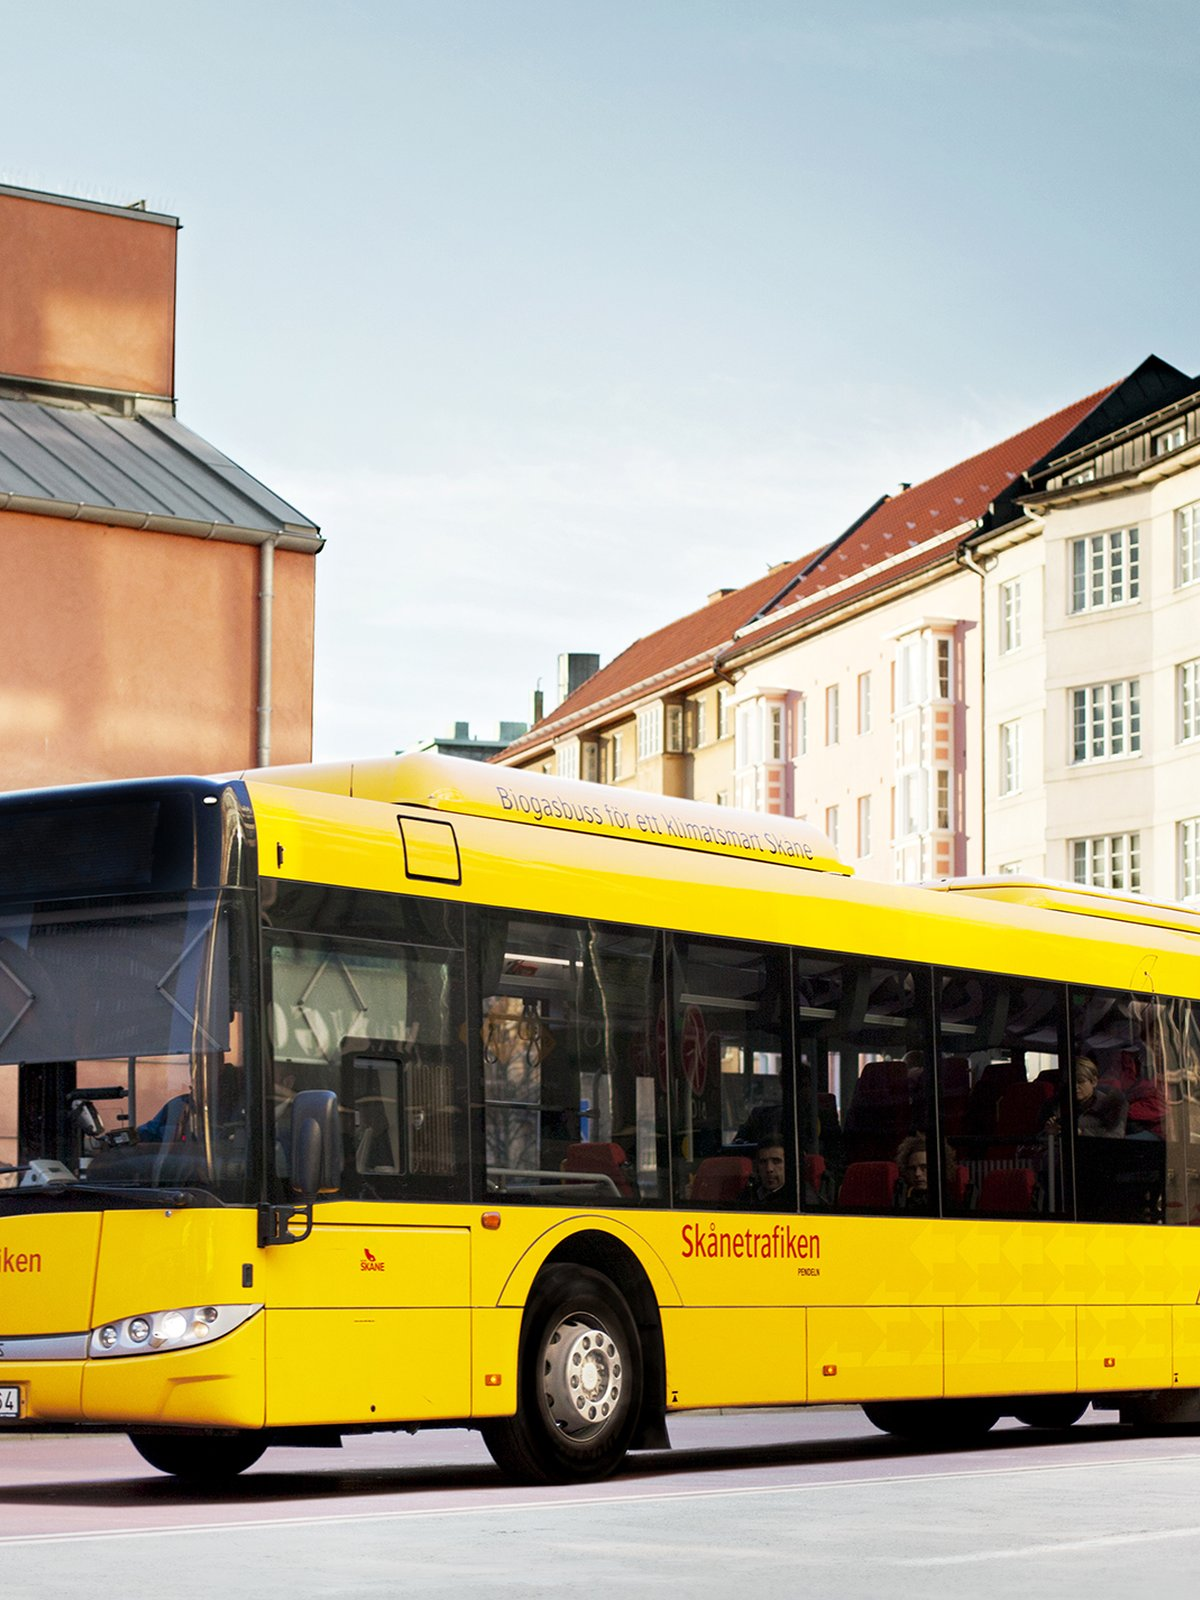 Yellow bus in front of buildings.